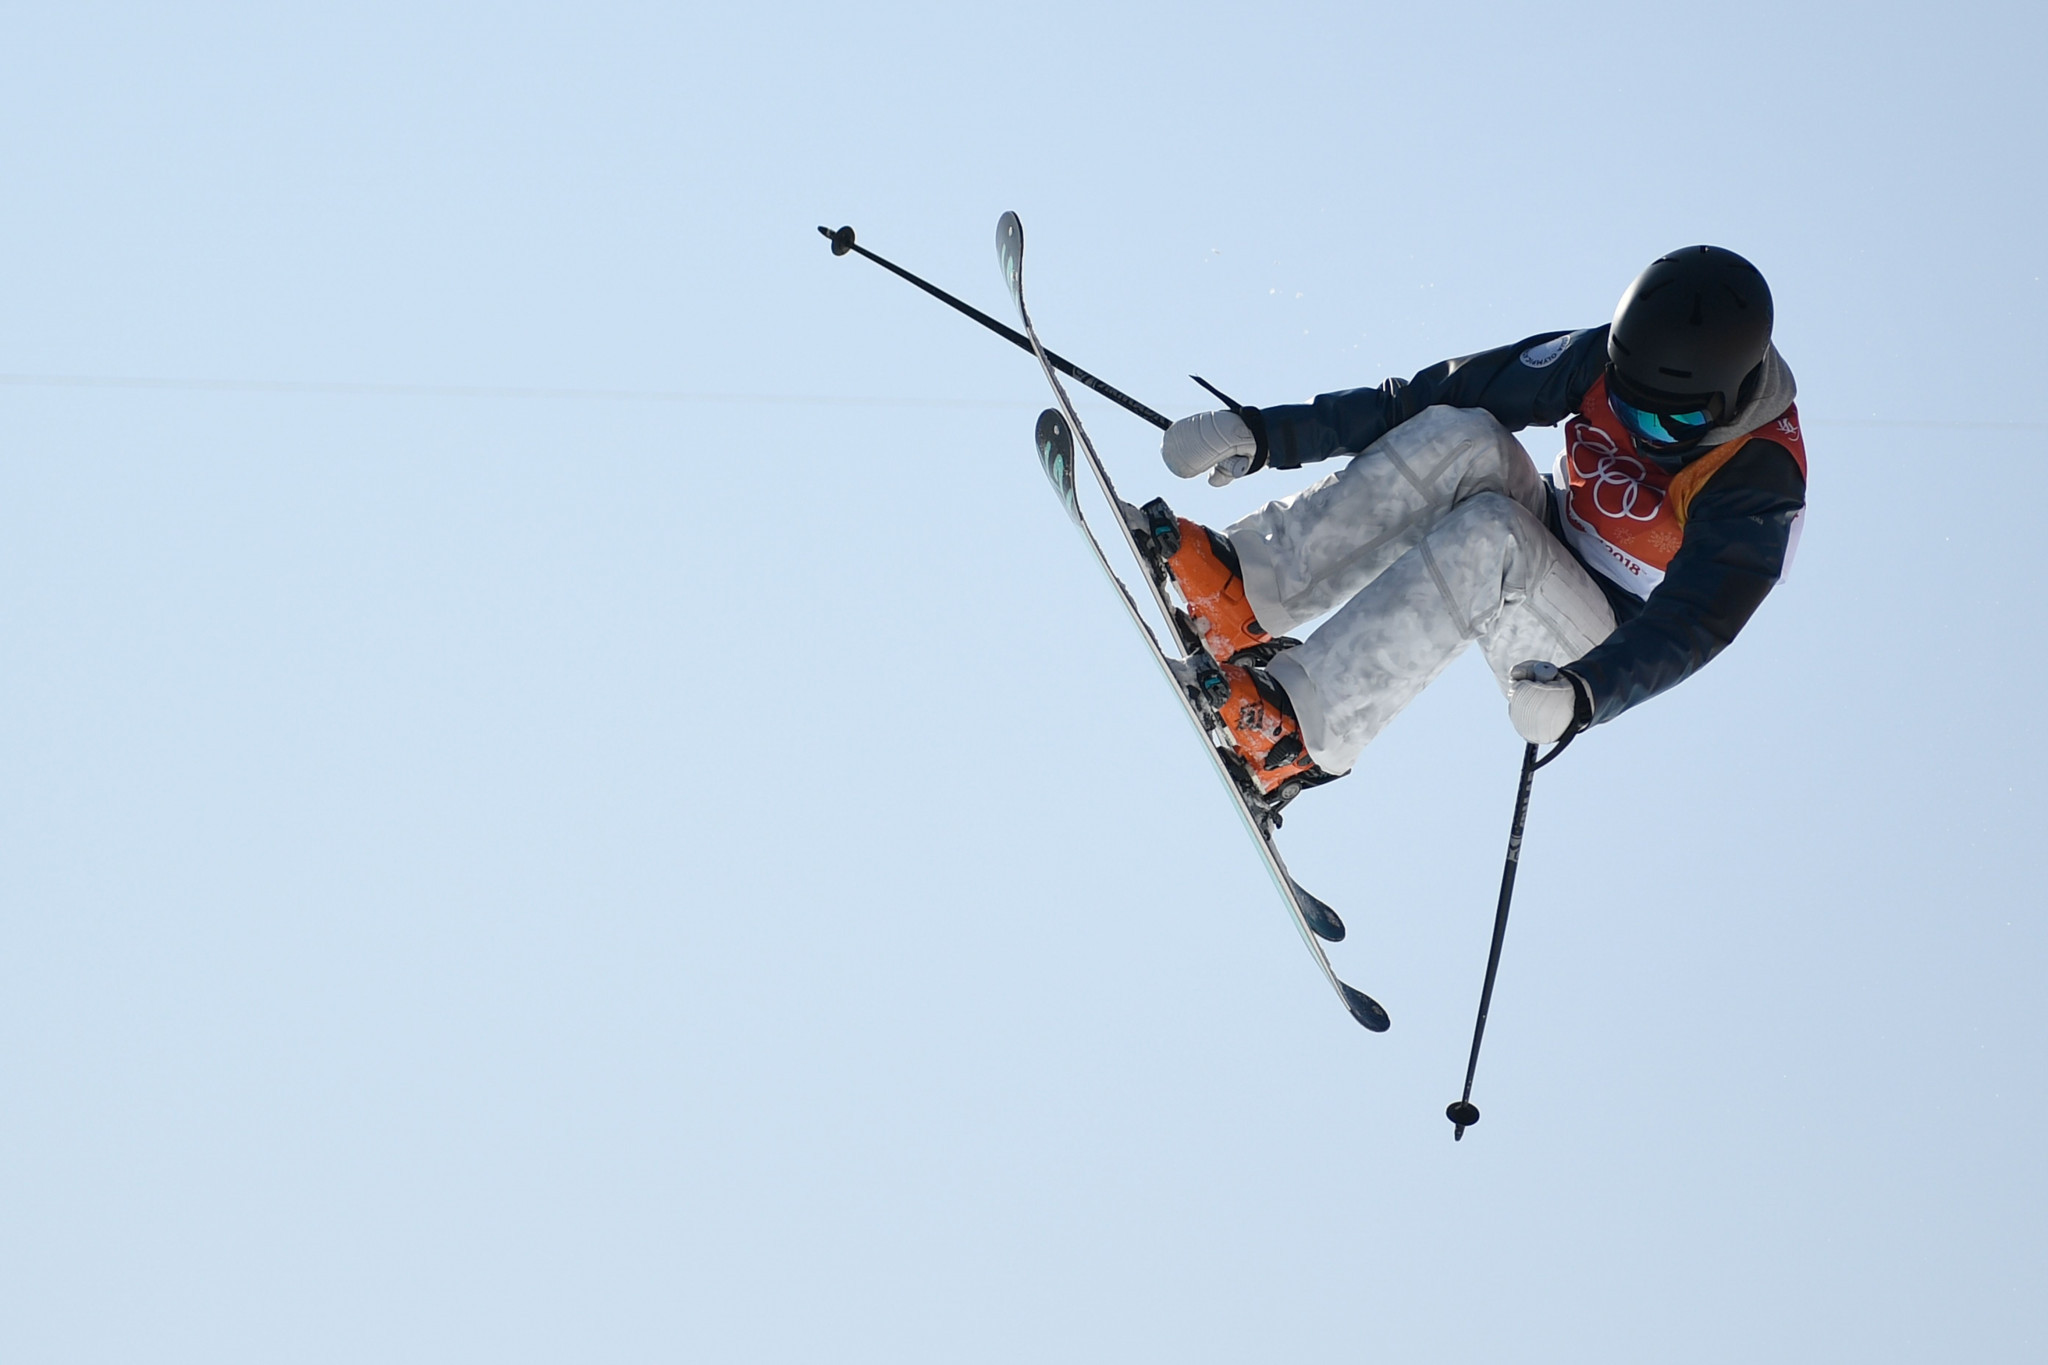 Valeriya Demidova of Russia earned her first career FIS Freeski Halfpipe World Cup win ©Getty Images